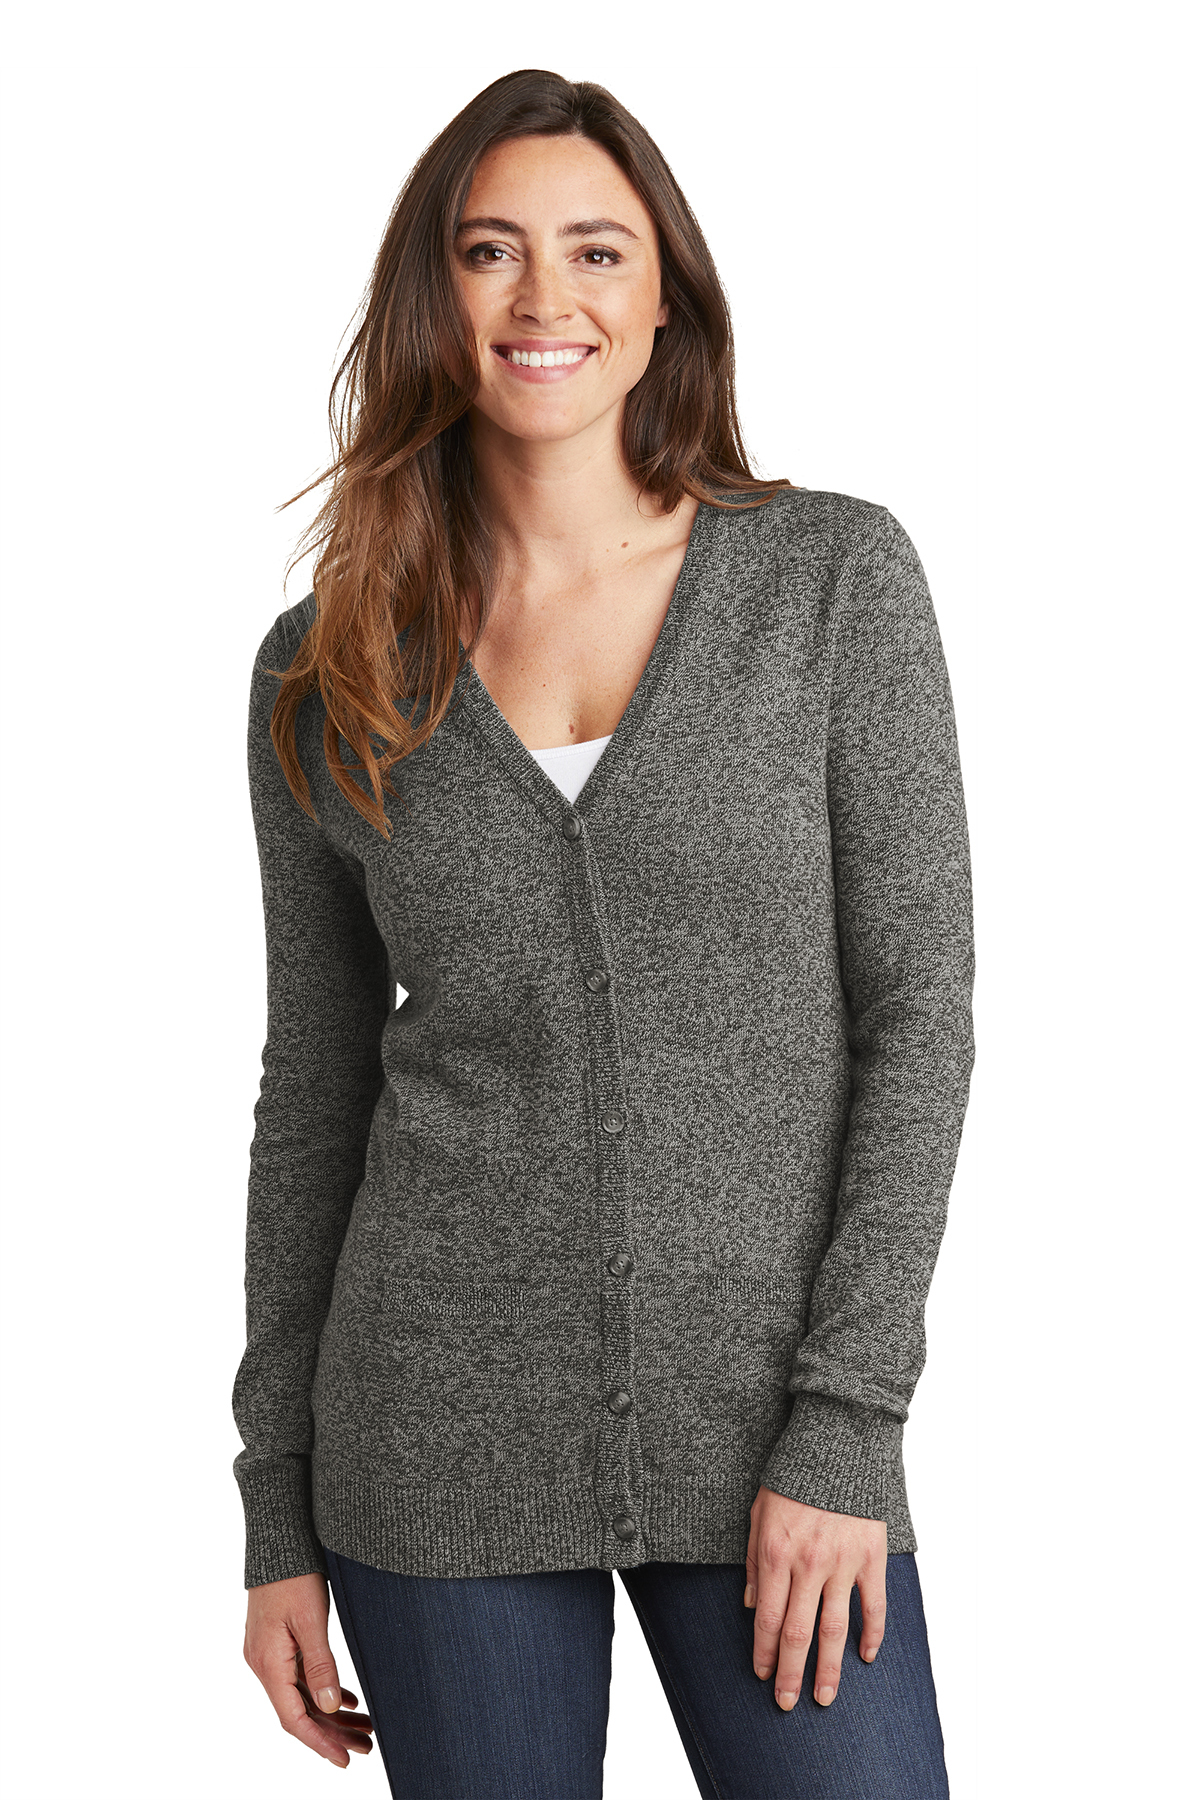 8f9efeeaf9 Port Authority LSW415 - Ladies Marled Cardigan Sweater  33.74 ...